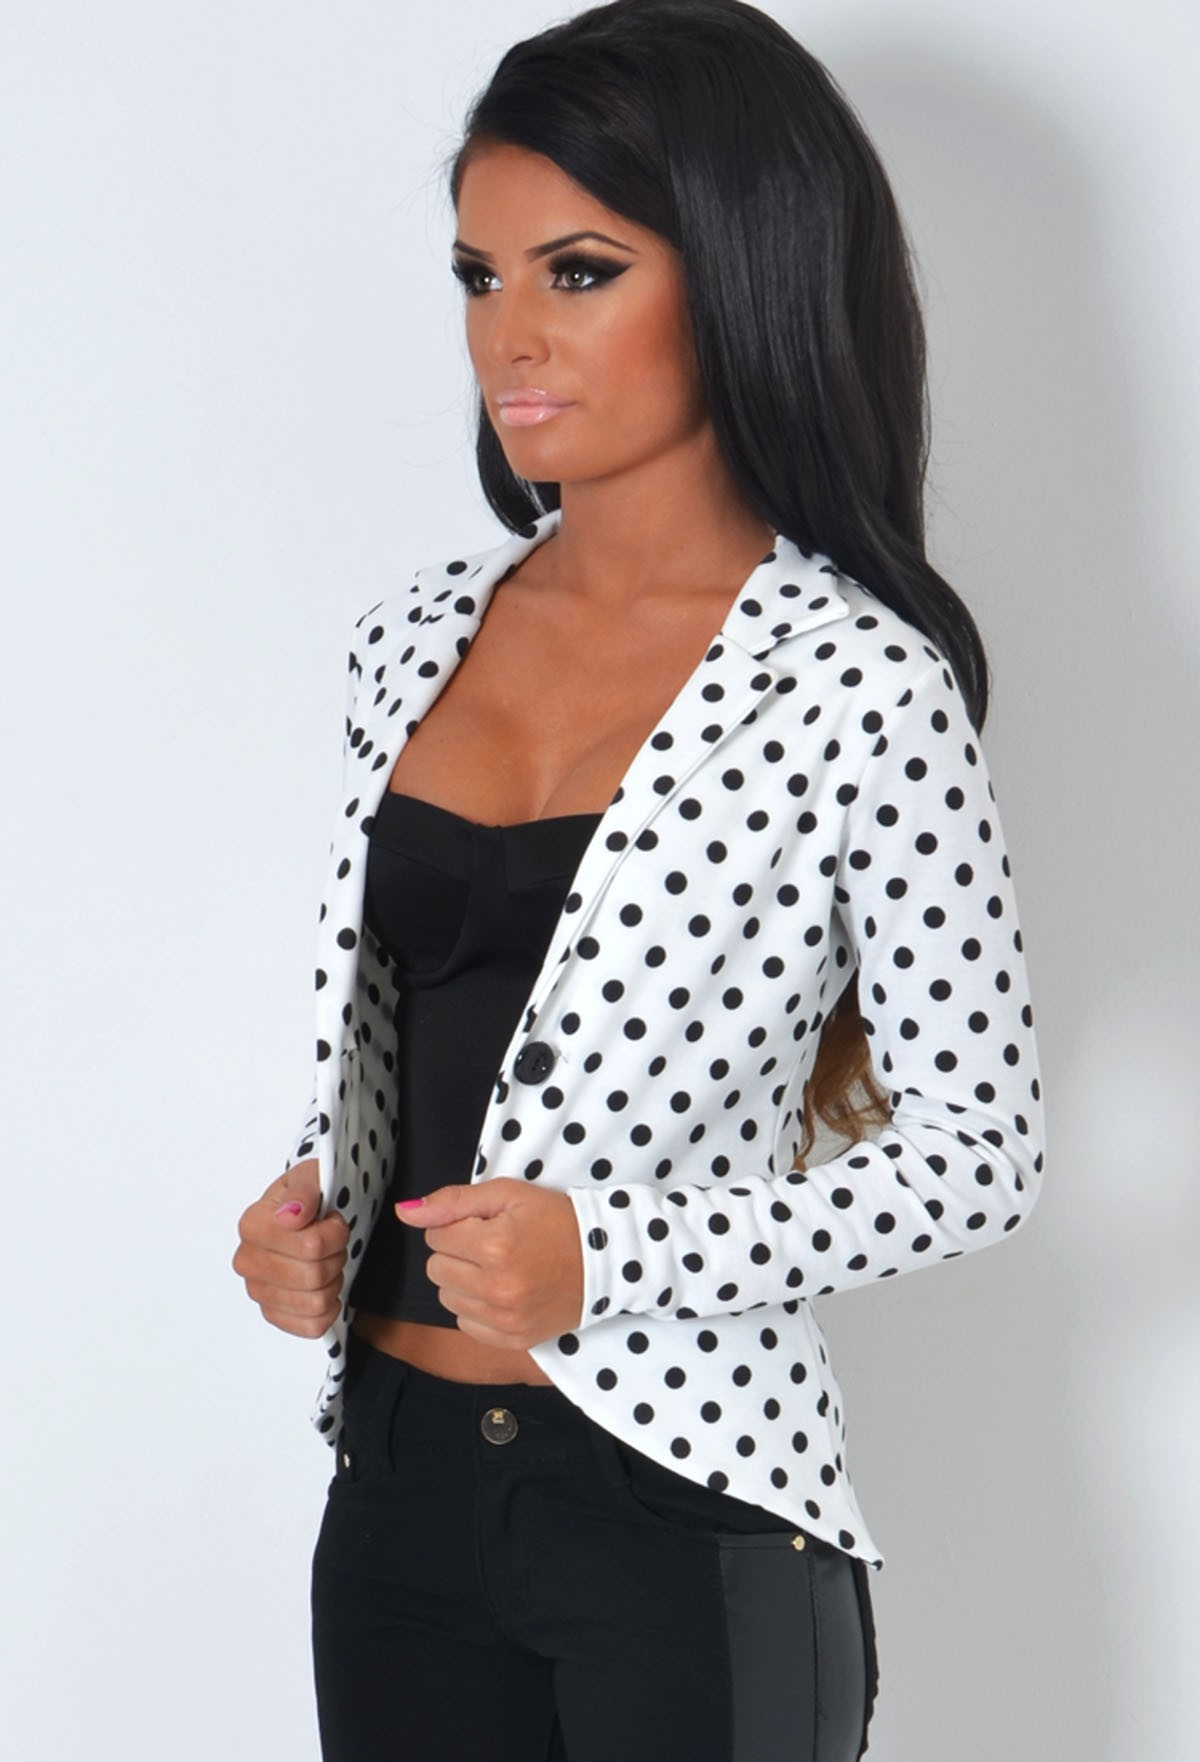 de2cac1b5e064 Spotty Dotty Black and White Polka Dot Jacket